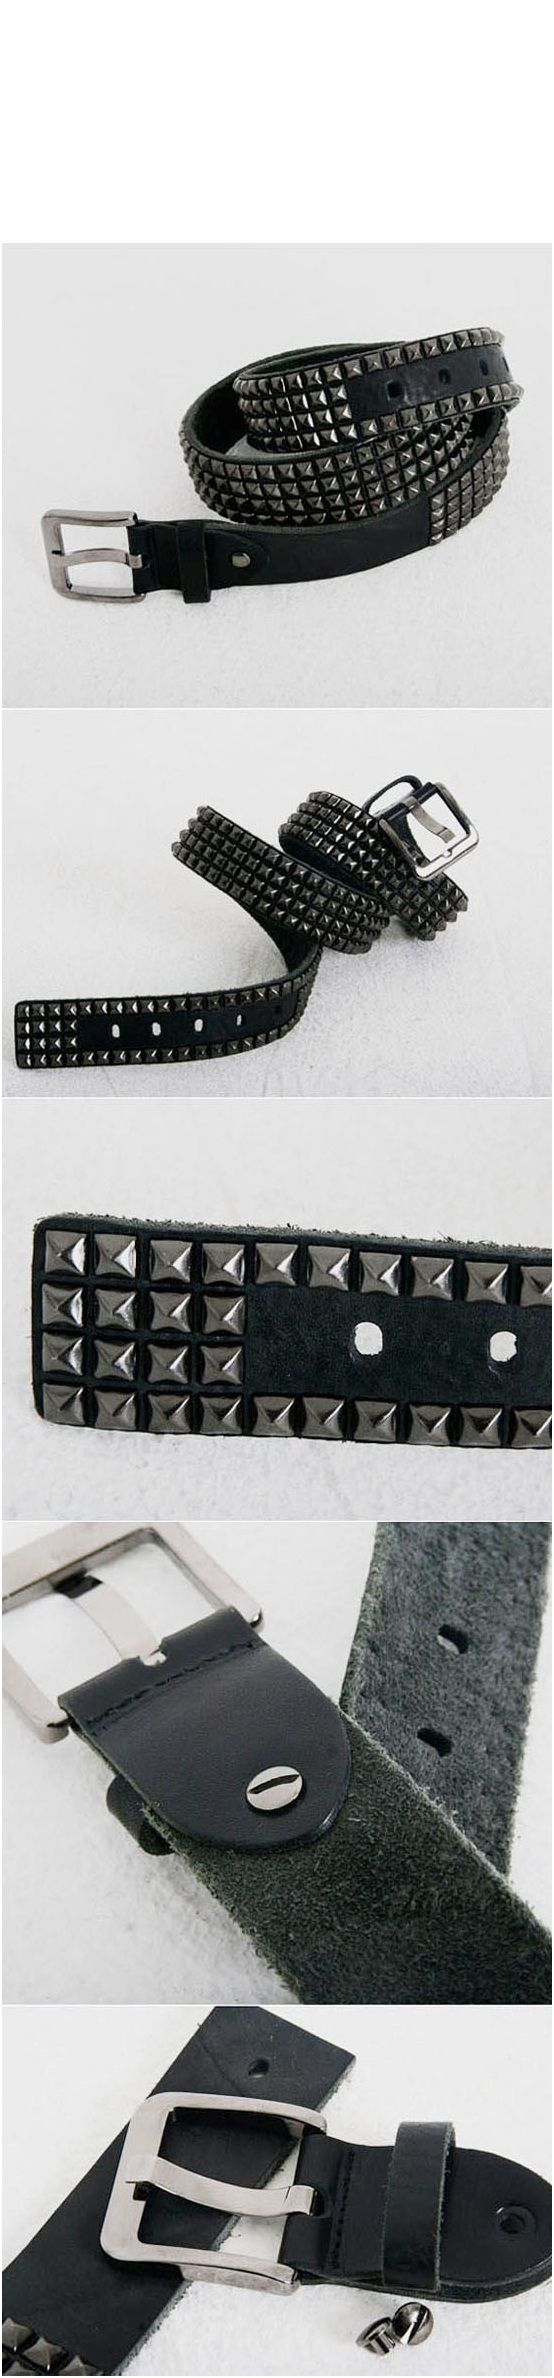 Buy Cool Belts & Buckles At Awesome Prices! Skulls, Studs, Leather, Metal & More. Shop Our Top Picks For Men's Cool Belts & Get 10% Off Your First Order!